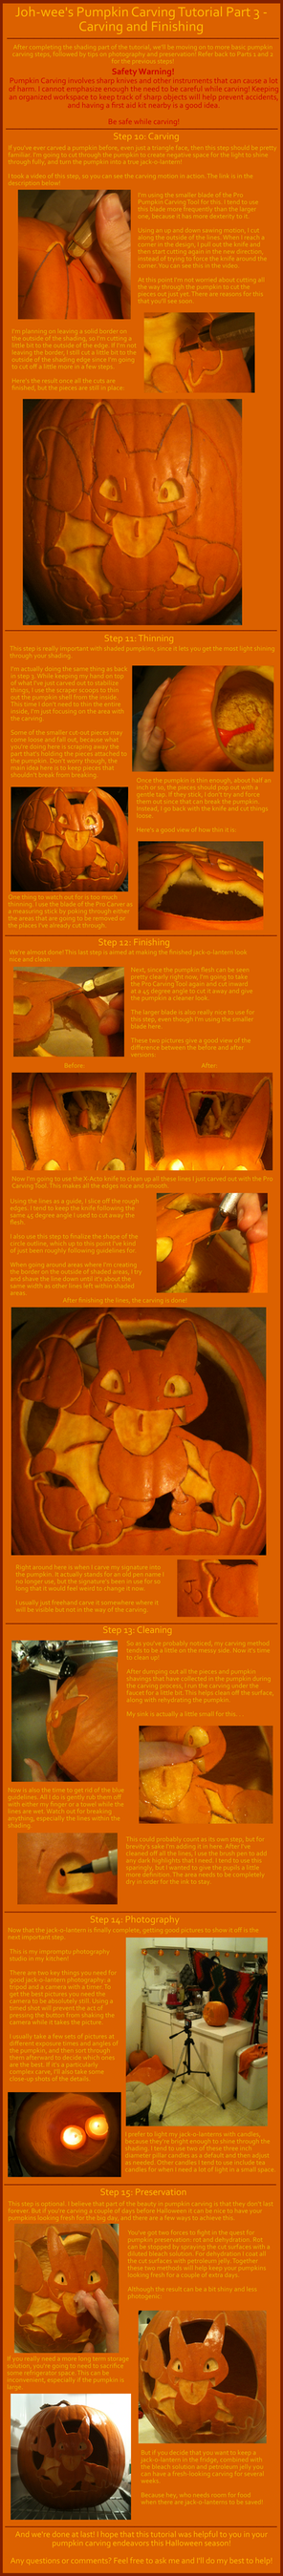 Pumpkin Carving Tutorial - Part 3 by johwee